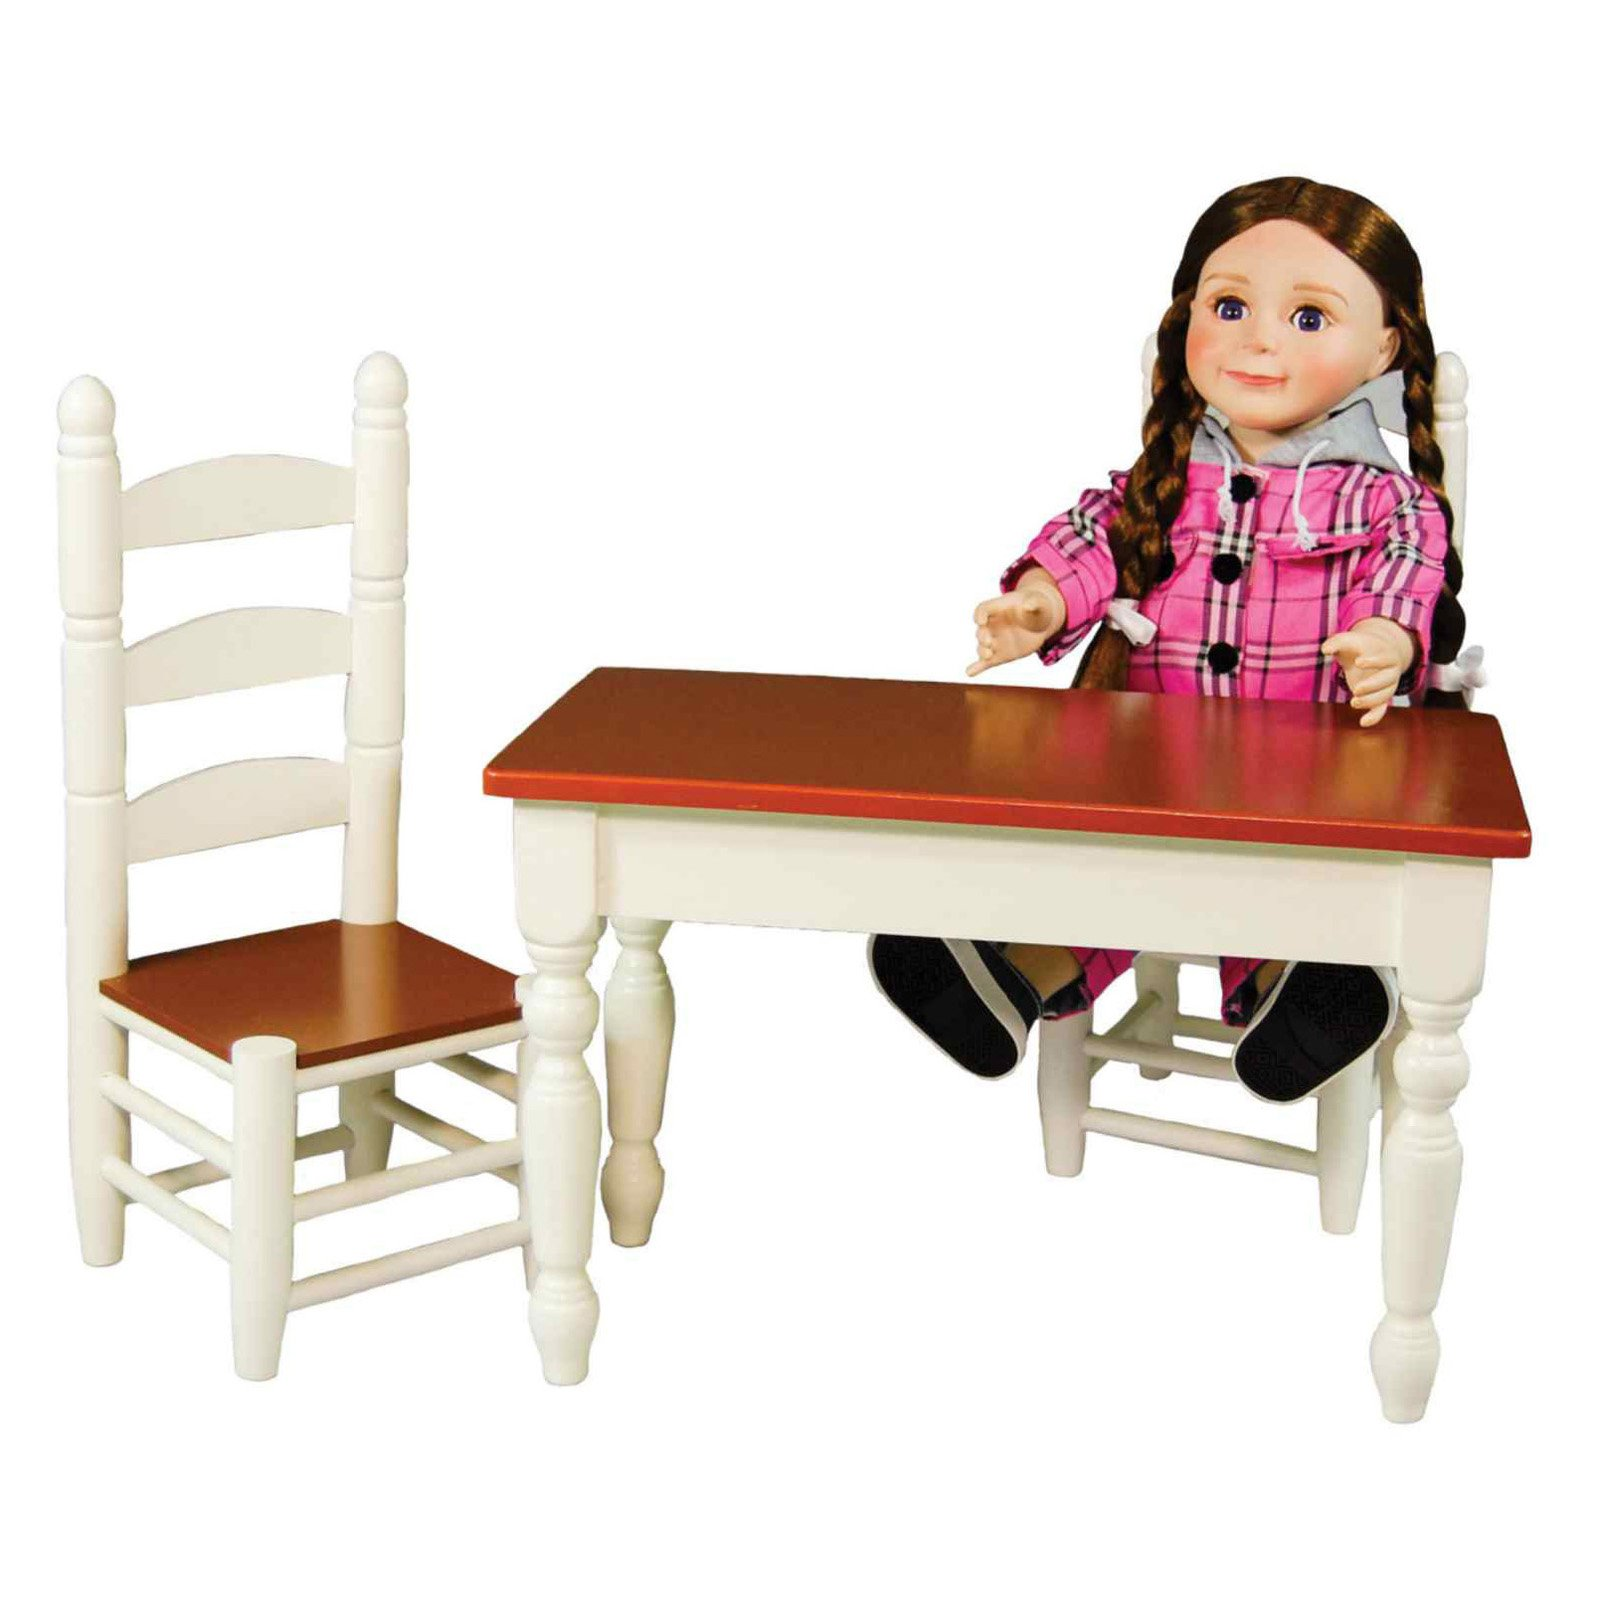 18 Inch Doll Furniture, Off White Wooden Farmhouse Kitchen Table And Two Chairs by Supplier Generic